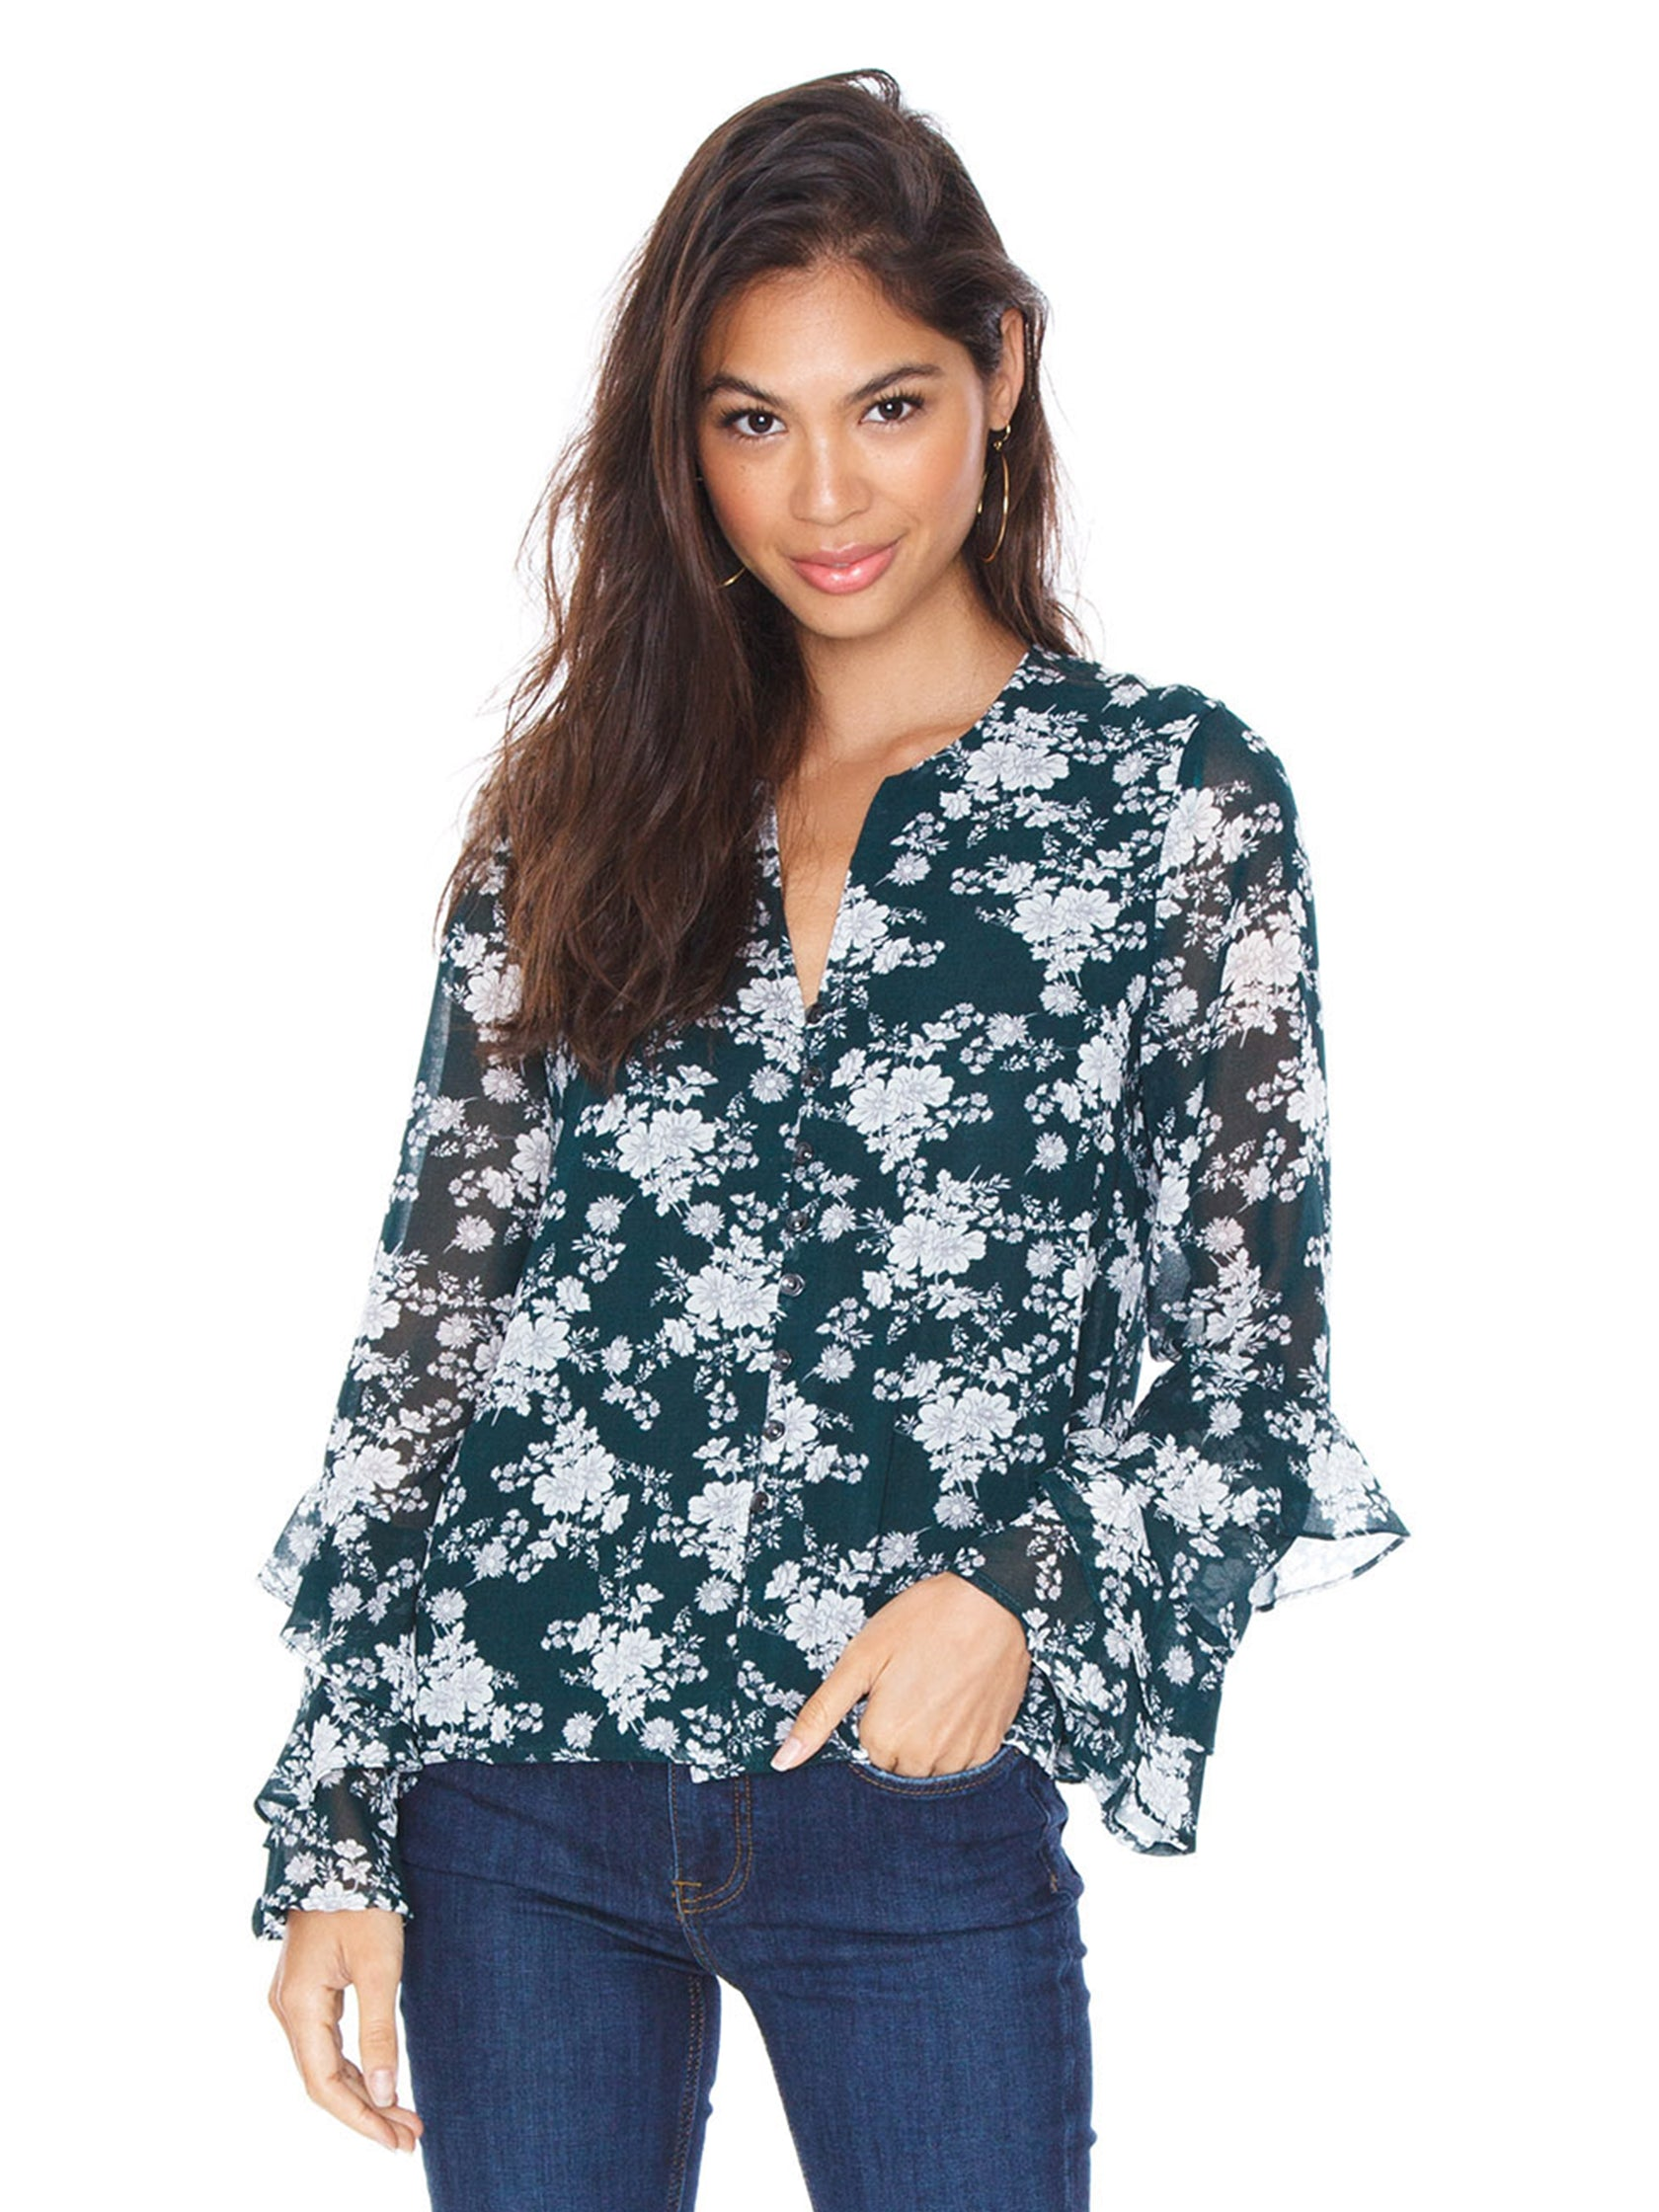 Woman wearing a top rental from 1.STATE called Ruffle Sleeve Blouse